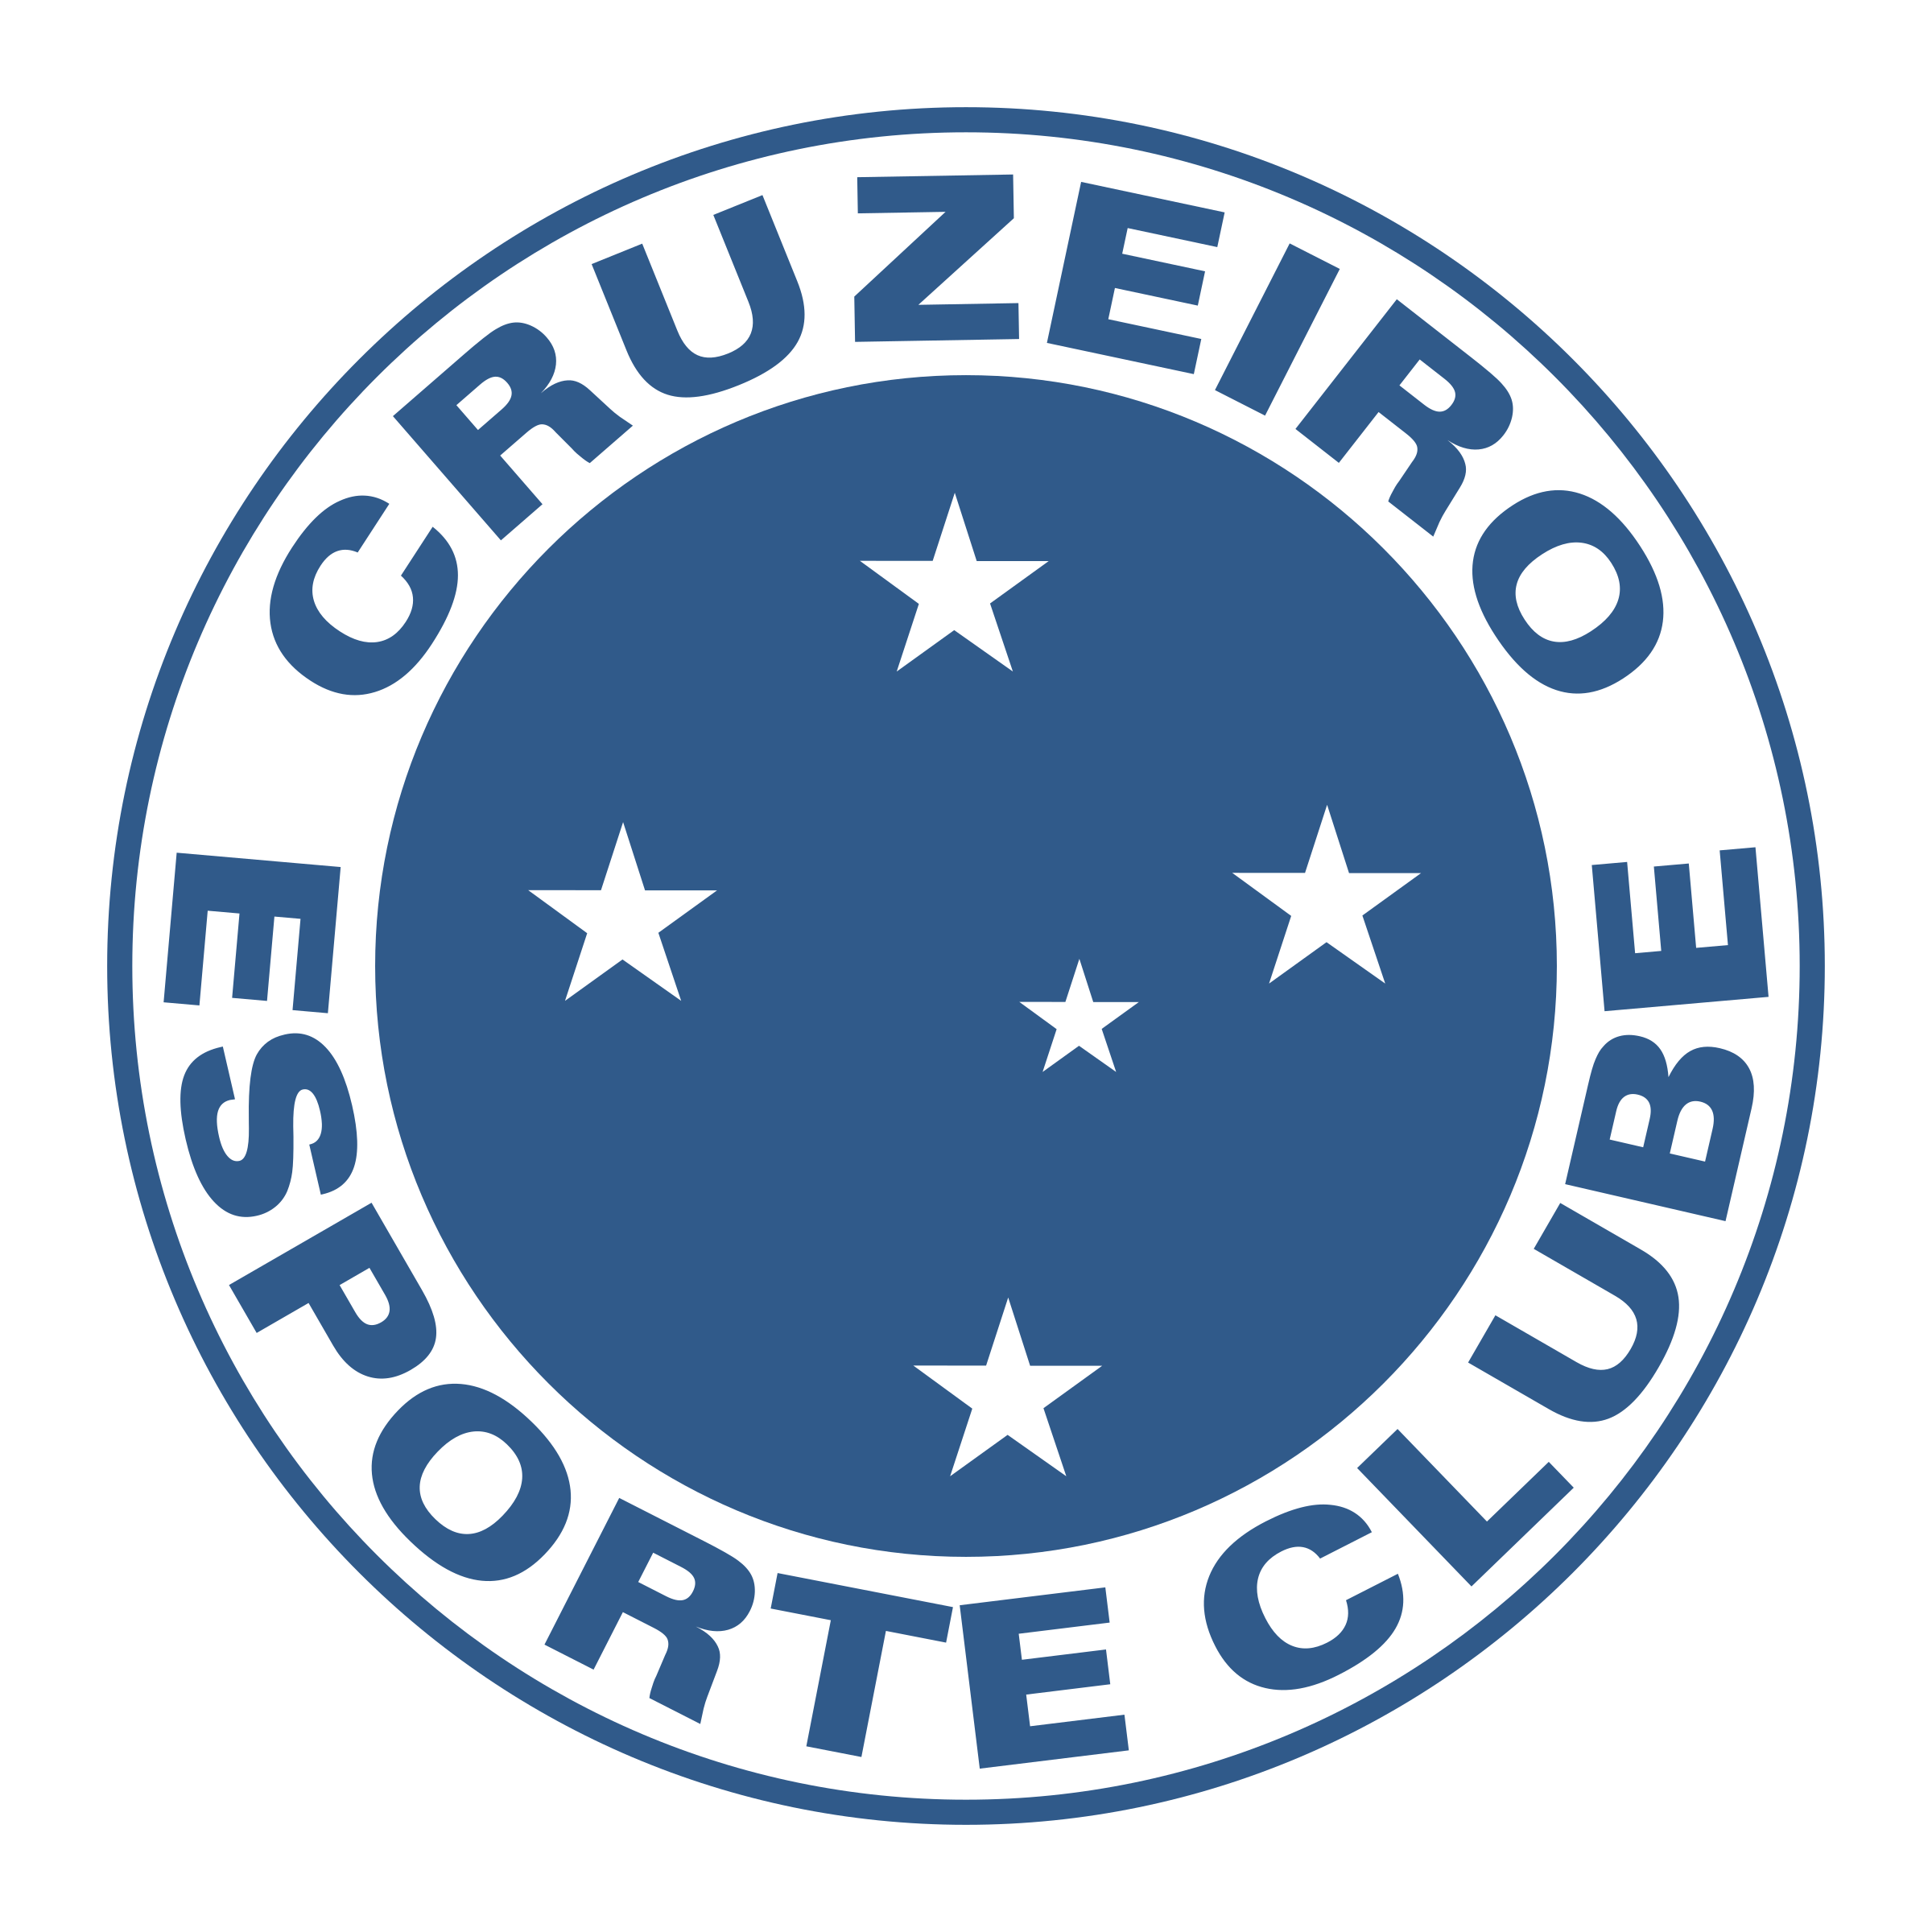 Cruzeiro 7934 Logo PNG Transparent & SVG Vector.